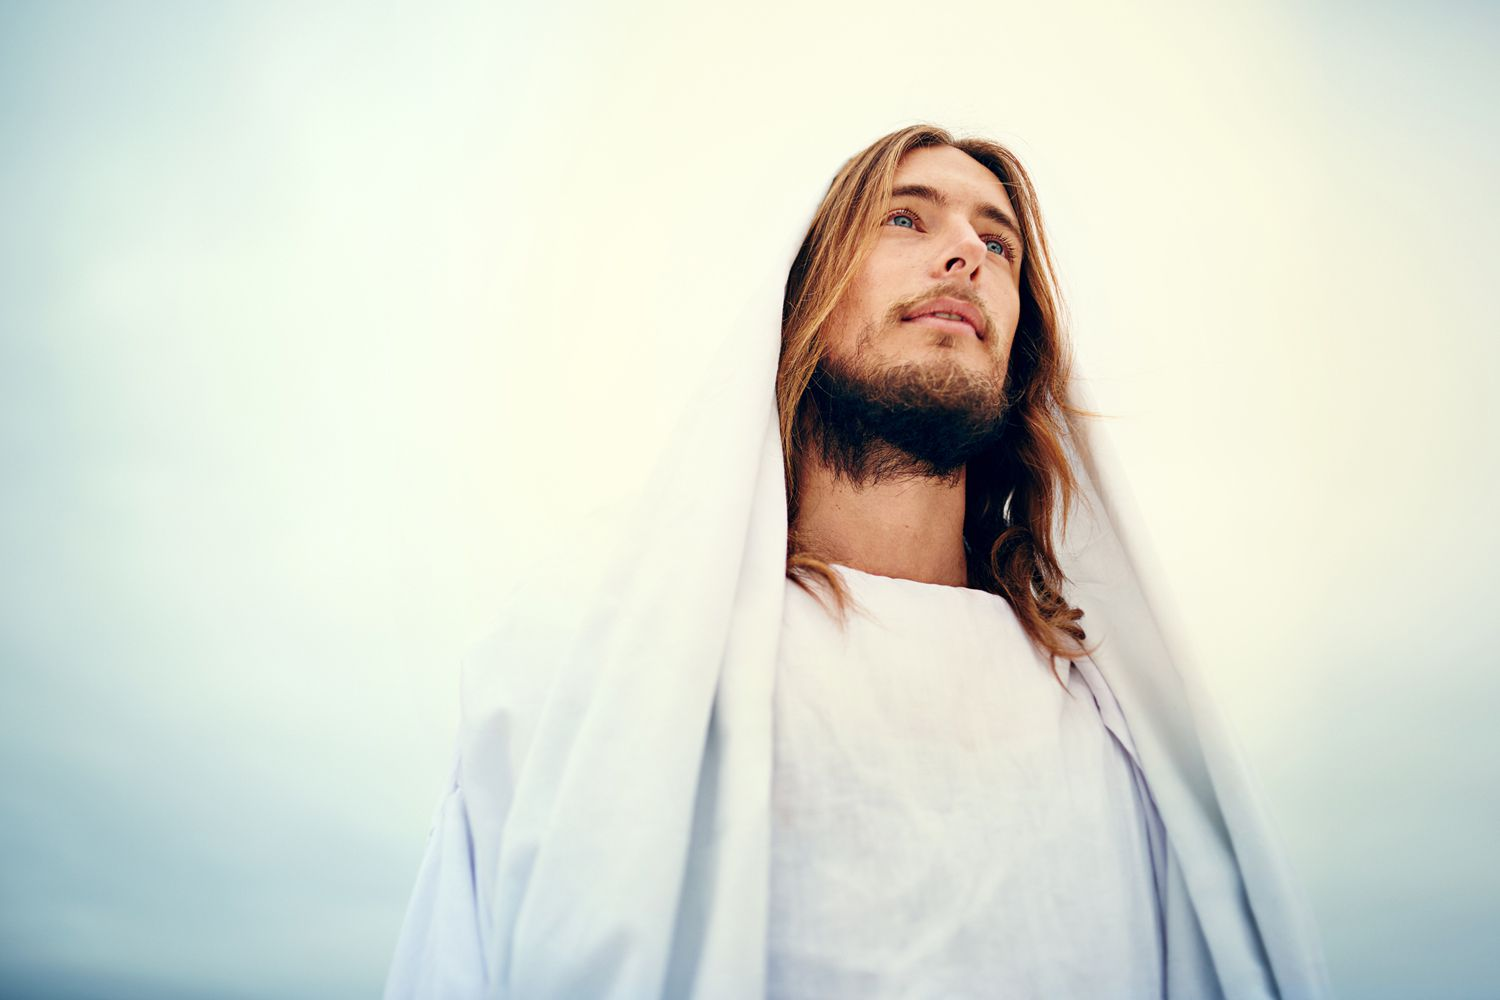 Who Is Jesus Christ? The Central Figure in Christianity